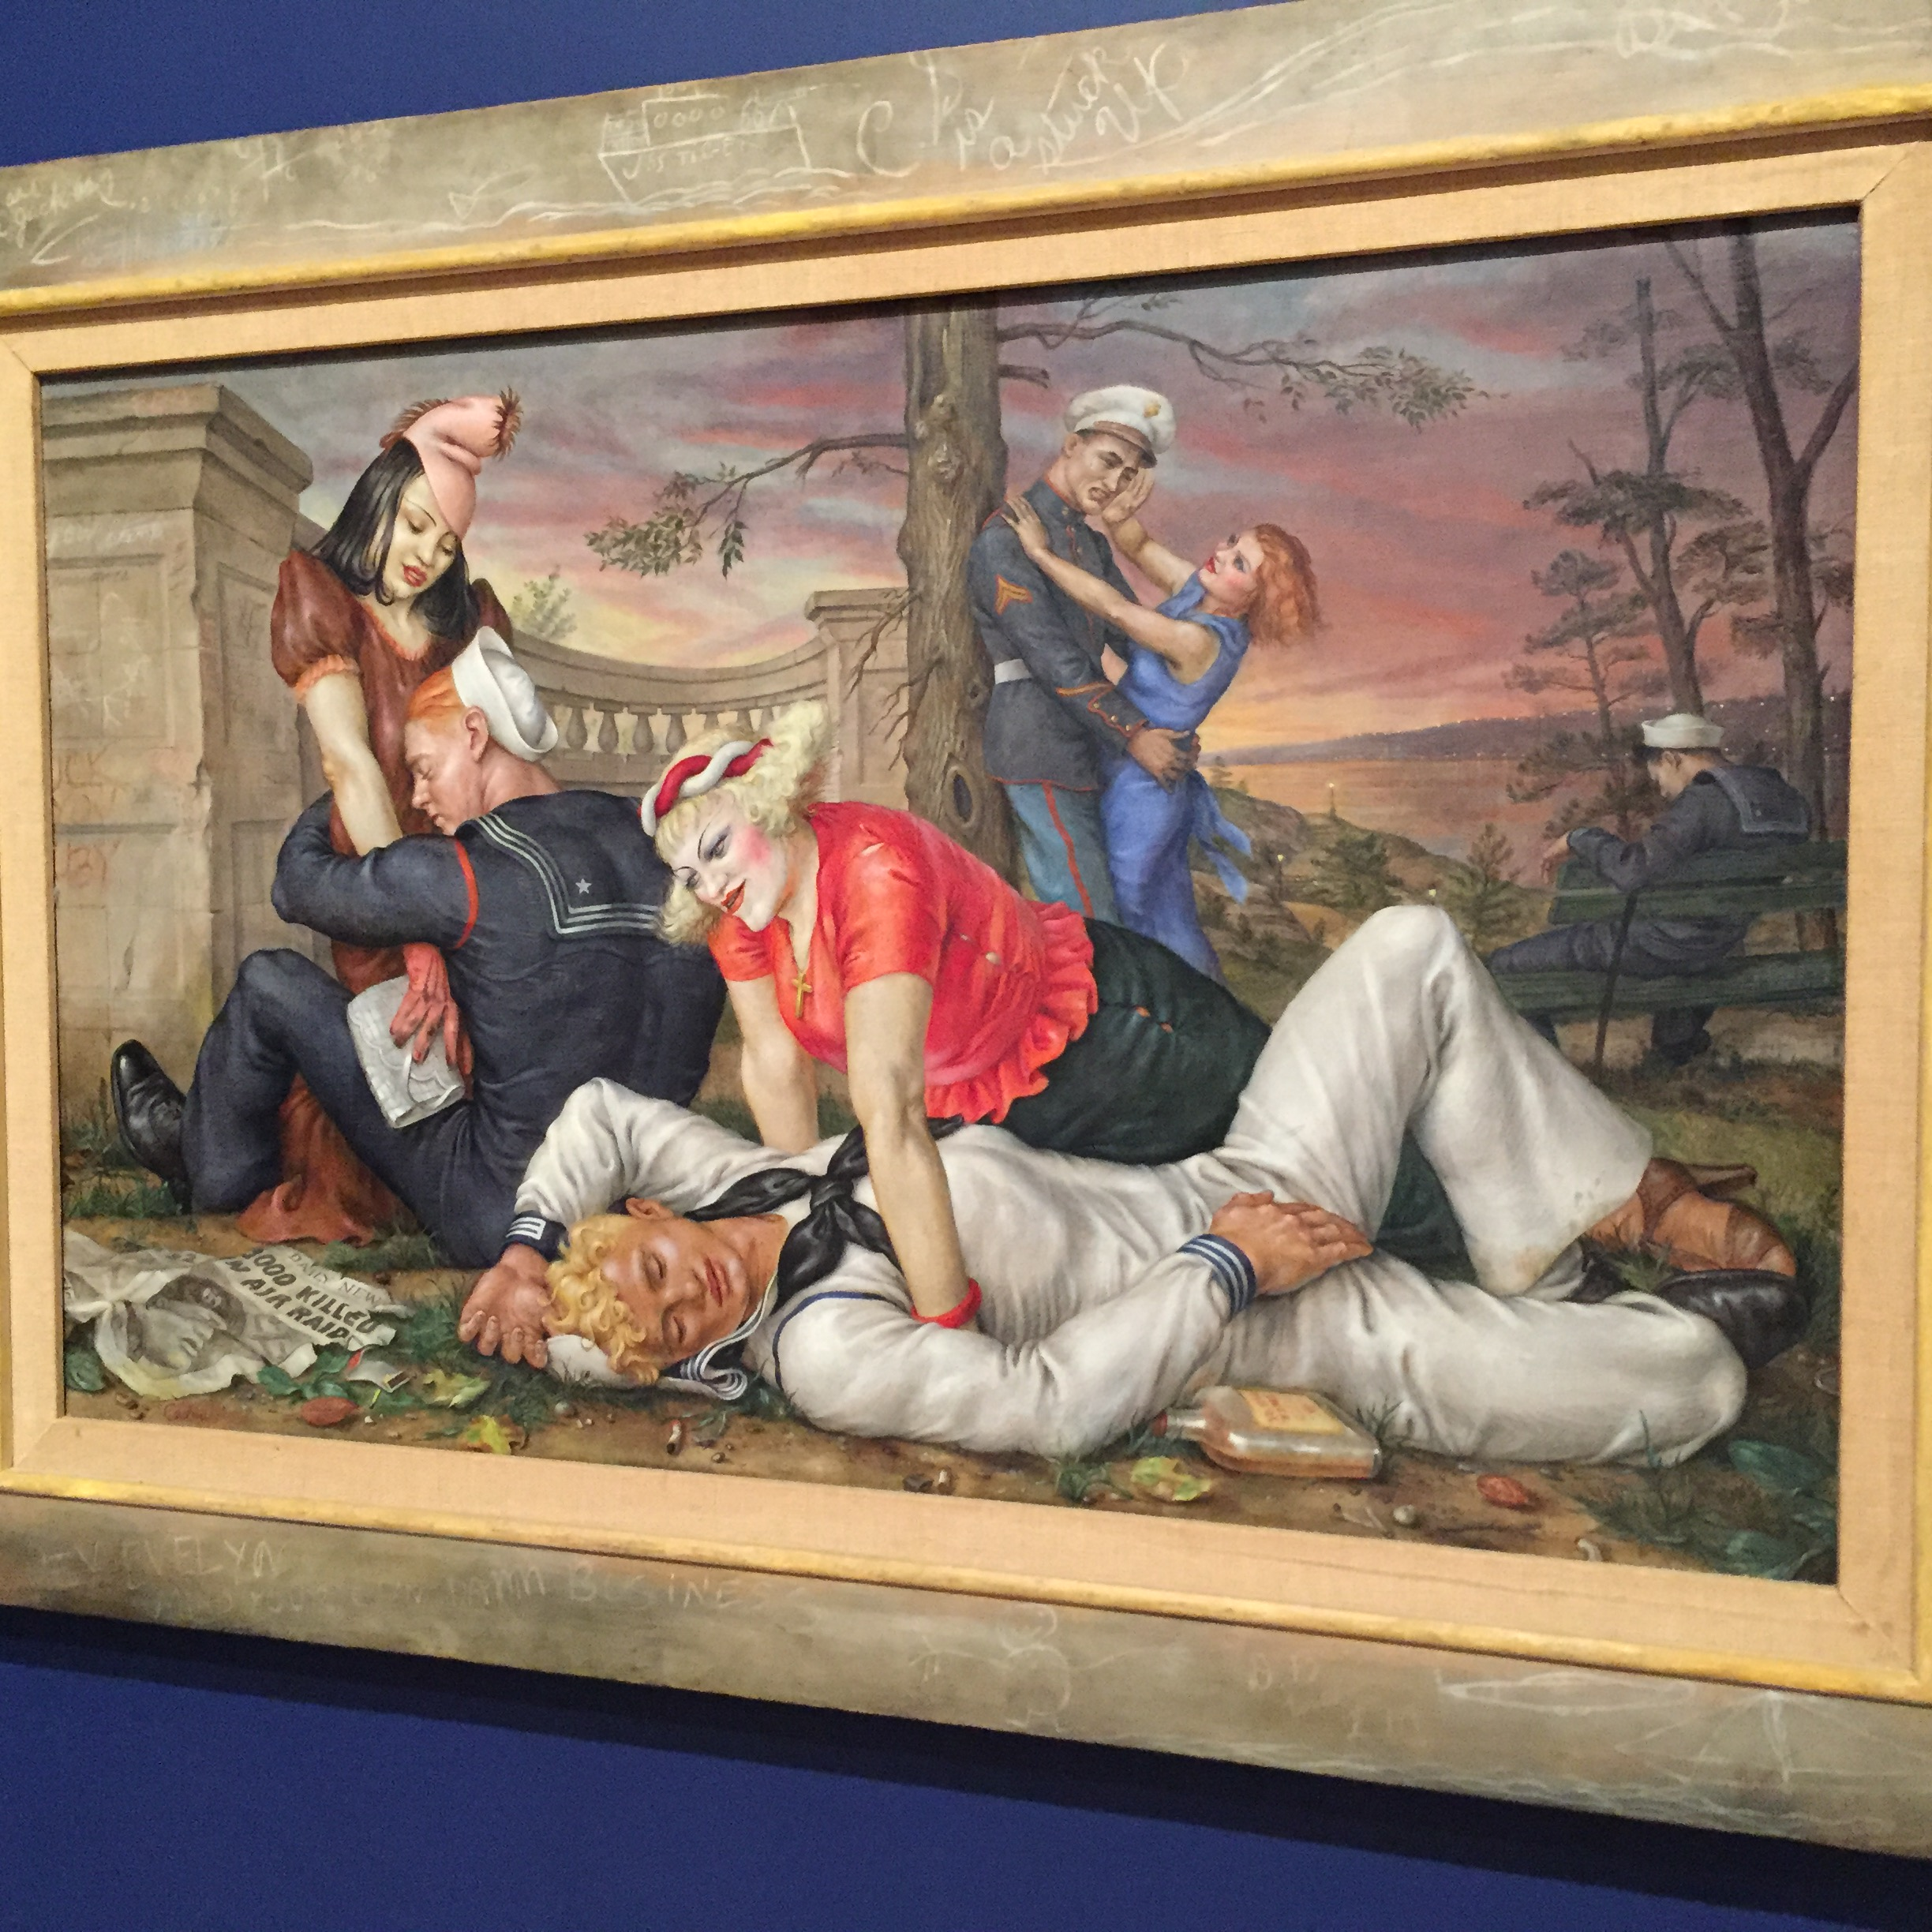 Sailors and Floozies  (1938) by Paul Cadmus on view at The Whitney Museum, NYC. Photo by Joe Salvatore